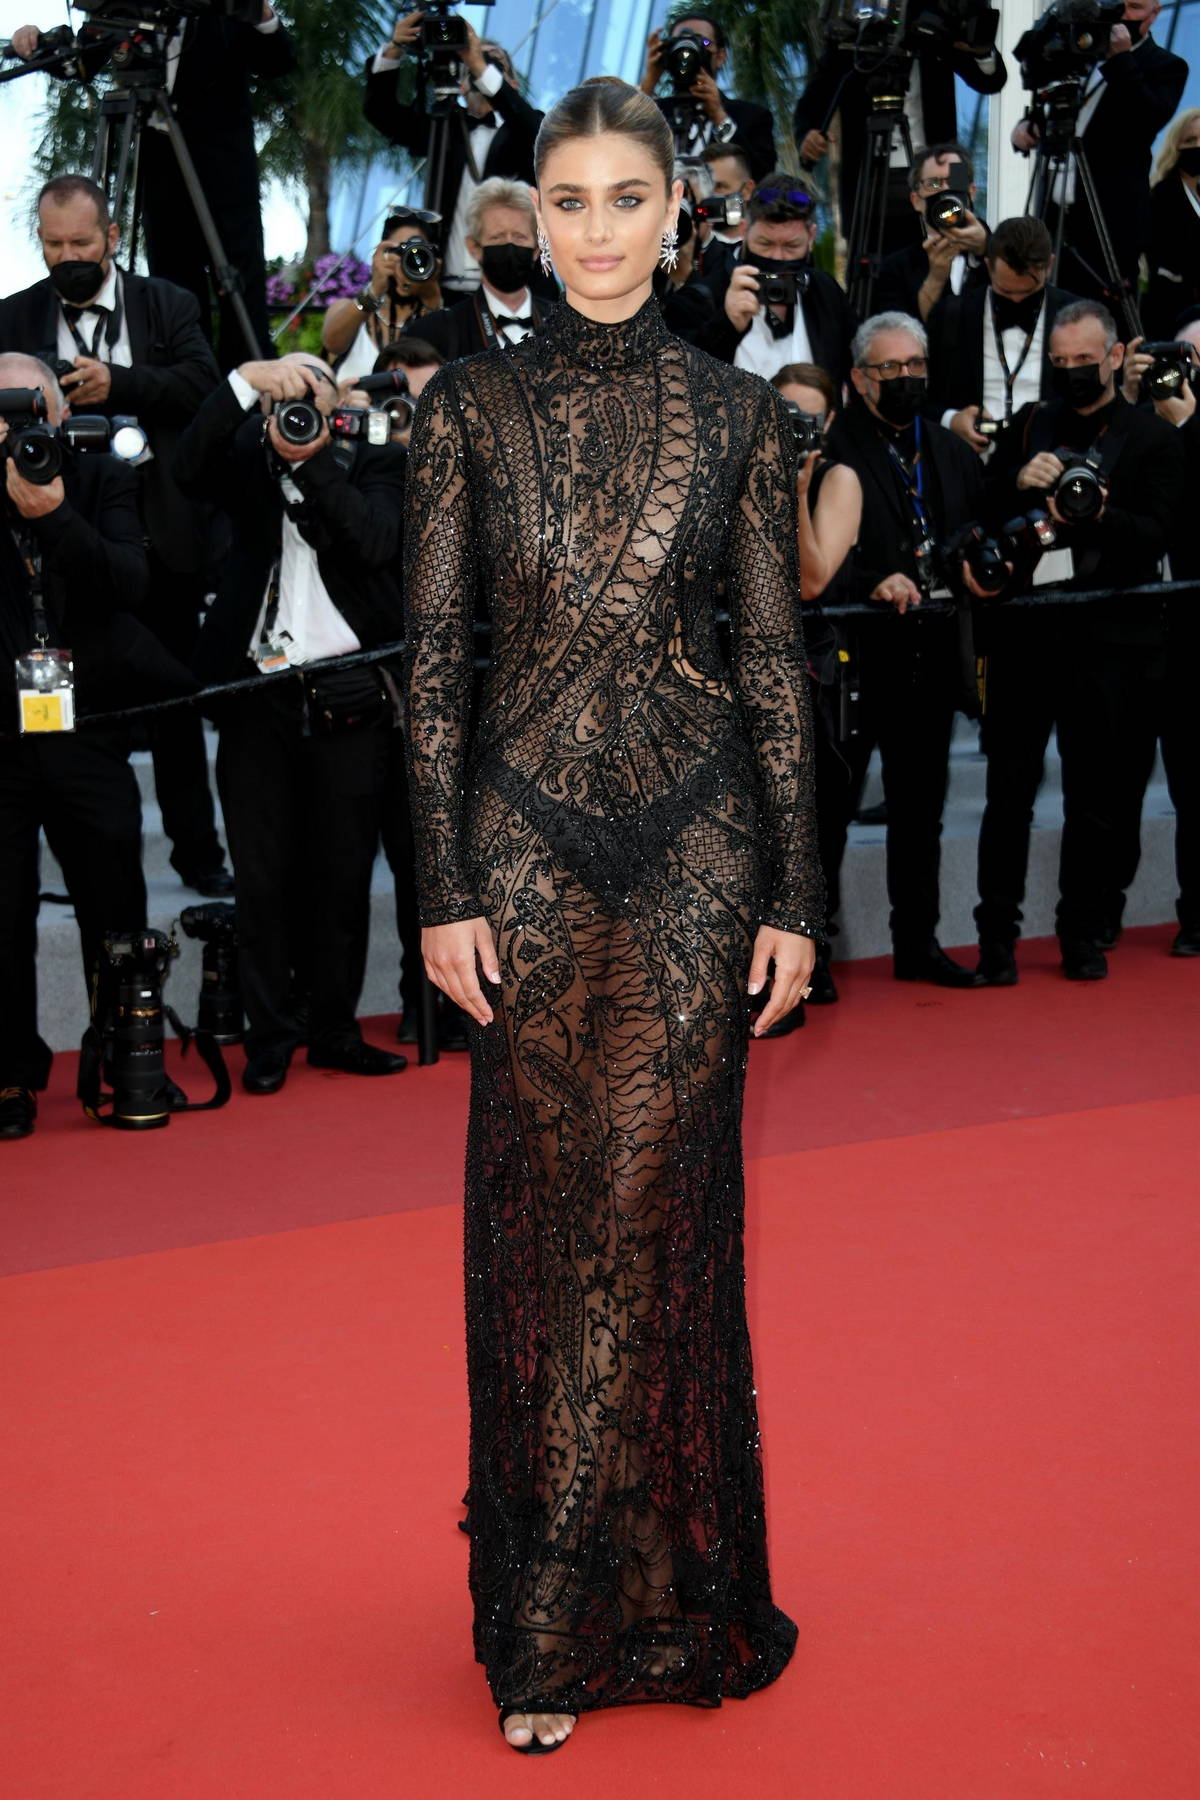 Taylor Hill attends the screening of 'De Son Vivant' during the 74th annual Cannes Film Festival in Cannes, France